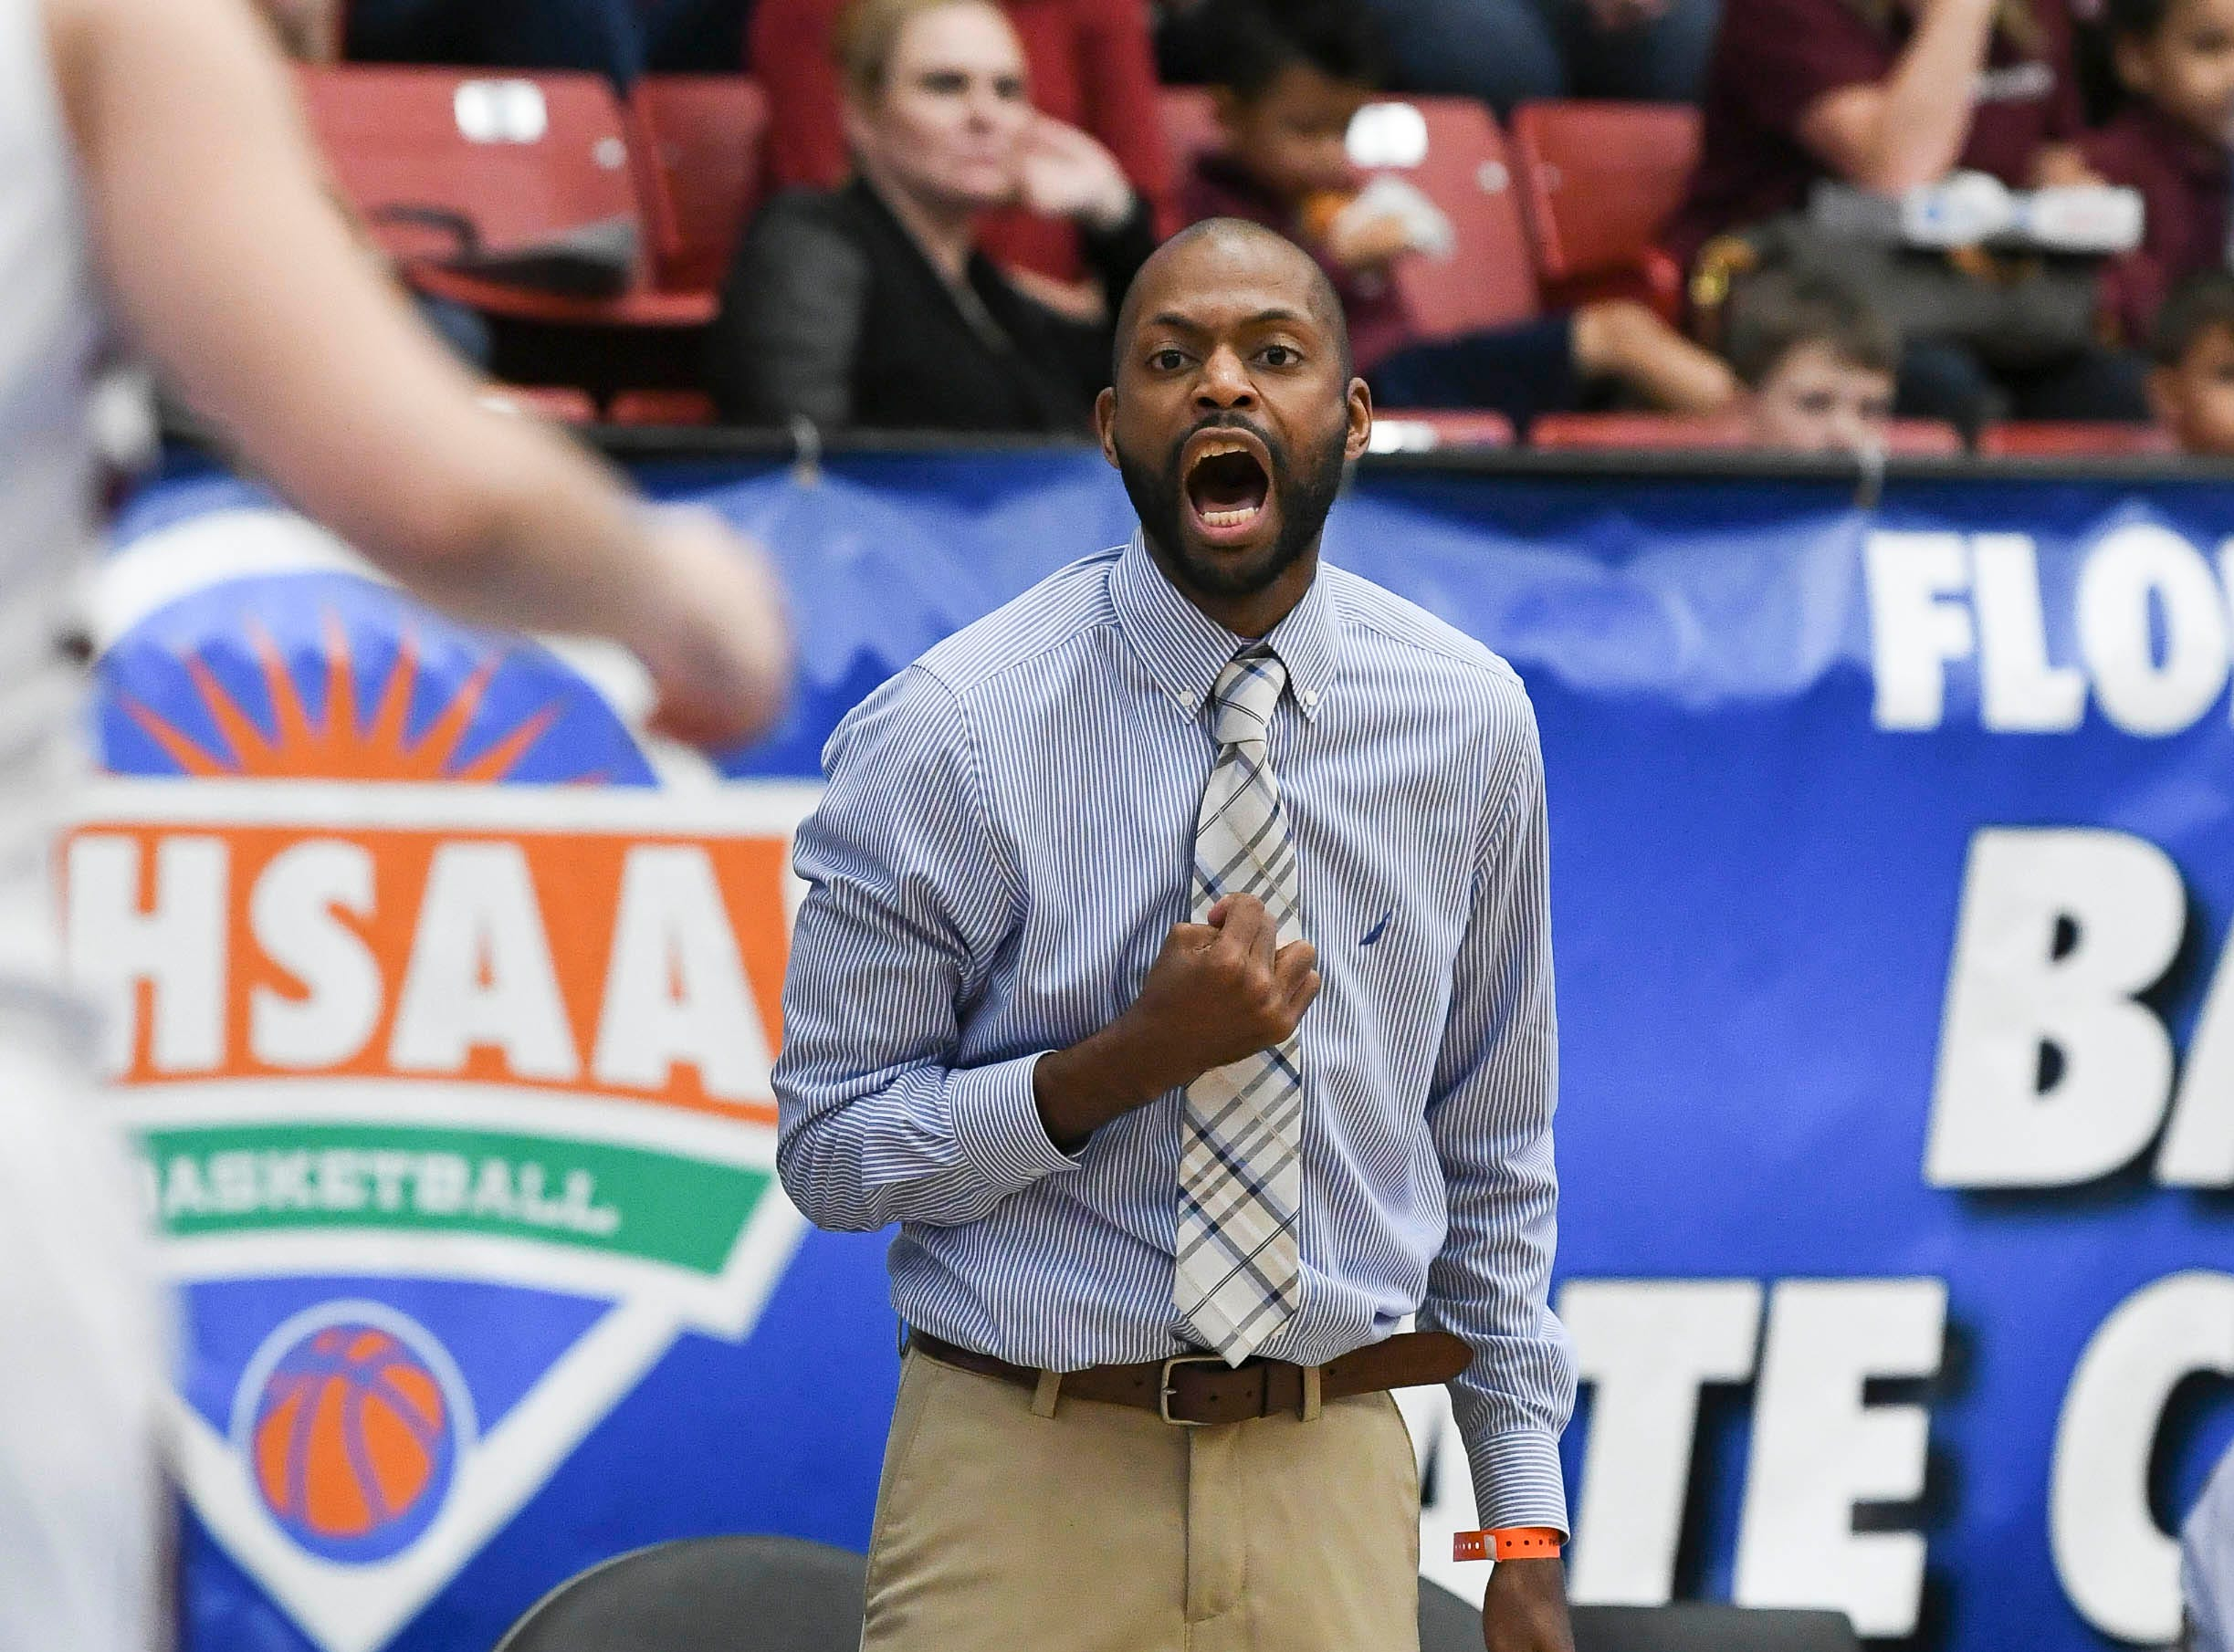 Florida Prep girls basketball head coach EJ Murray yells instructions to his players during Tuesday's Class 2A state championship game.